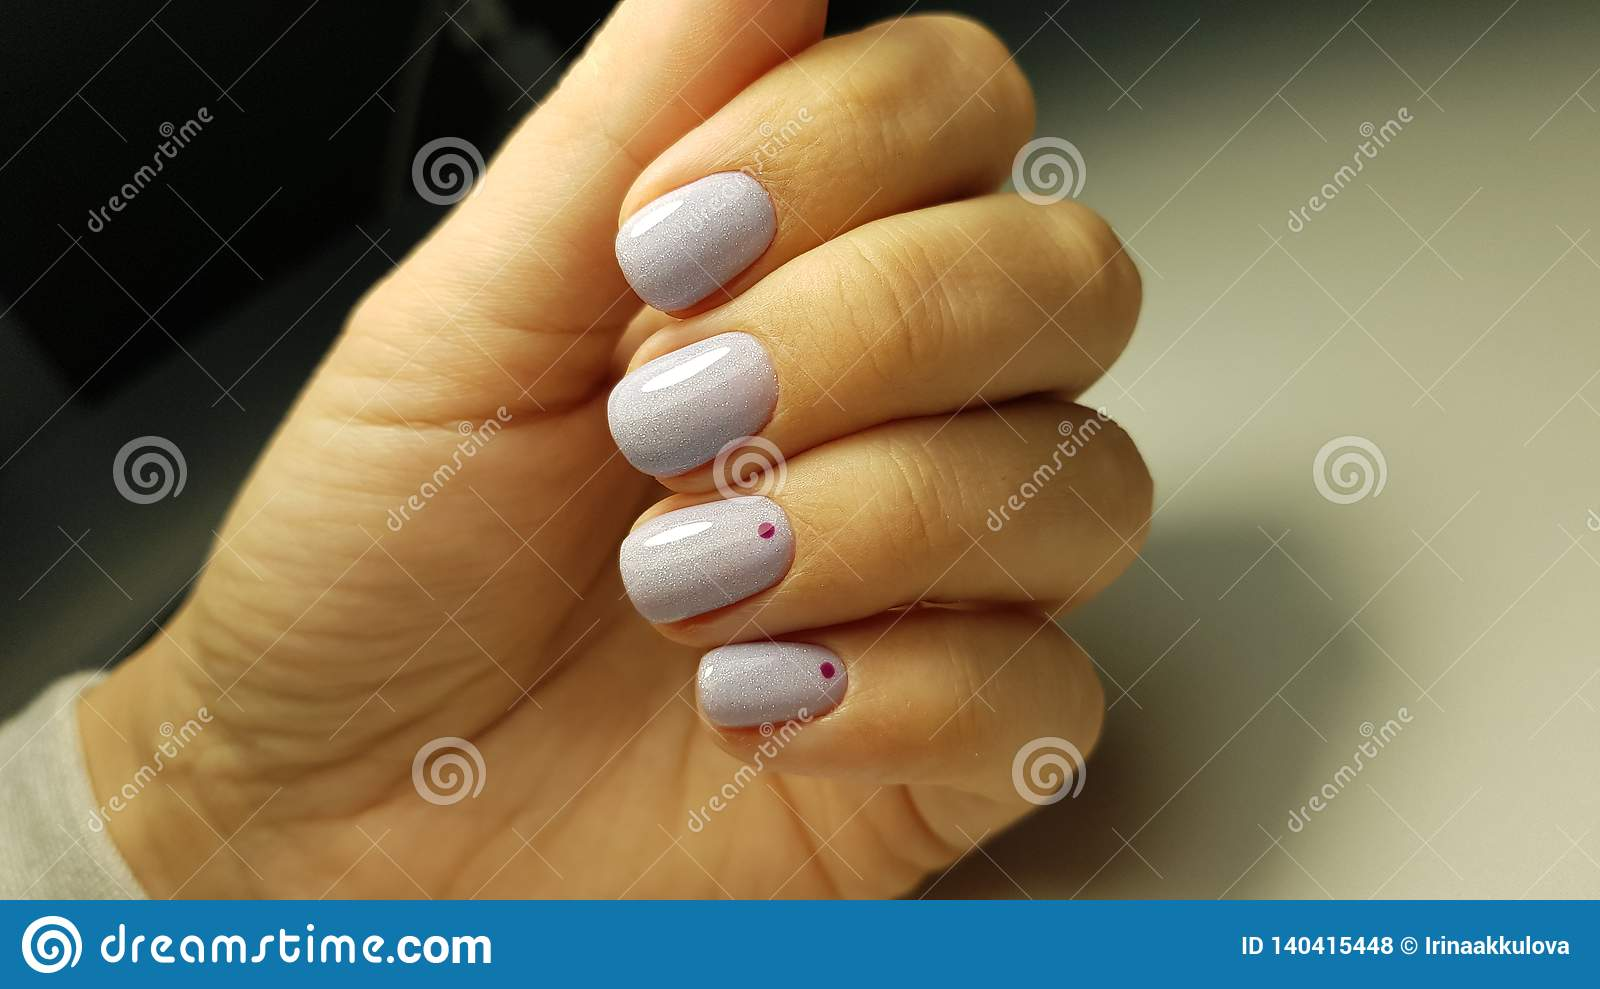 Blue Nails Gel Polish With Minimal Design Stock Photo - Image of ...